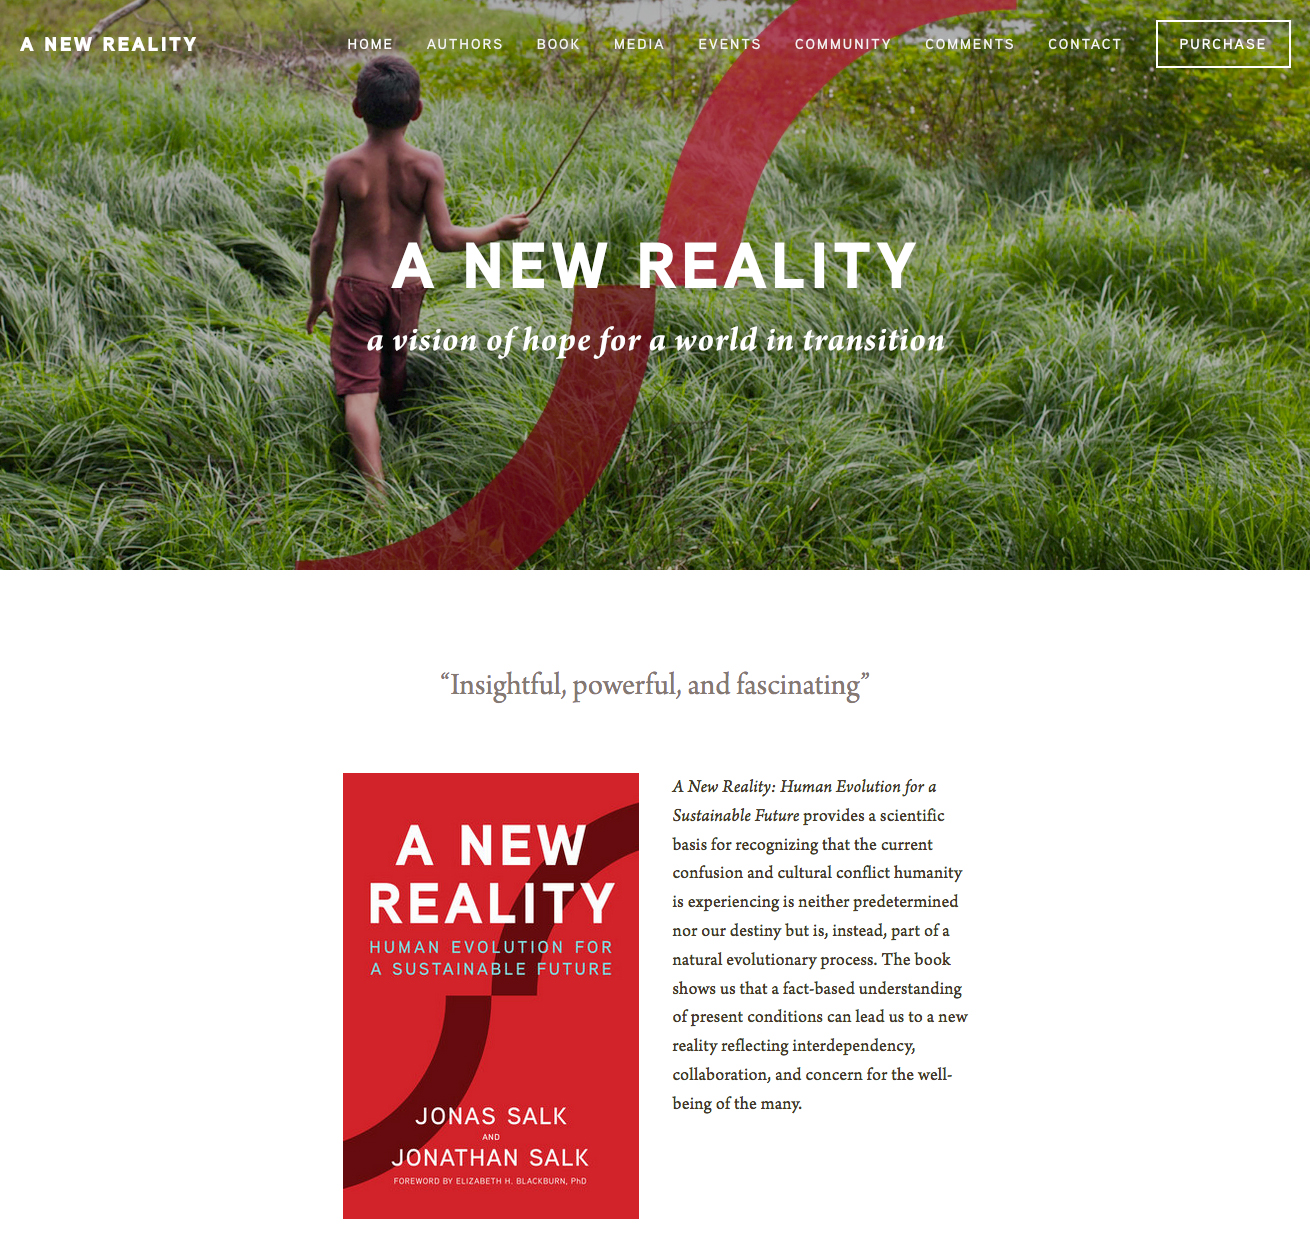 Website for A New Reality: Human Evolution for a Sustainable Future by Jonas Salk and Jonathan Salk with David Dewane, Foreword by Elizabeth Blackburn, PhD